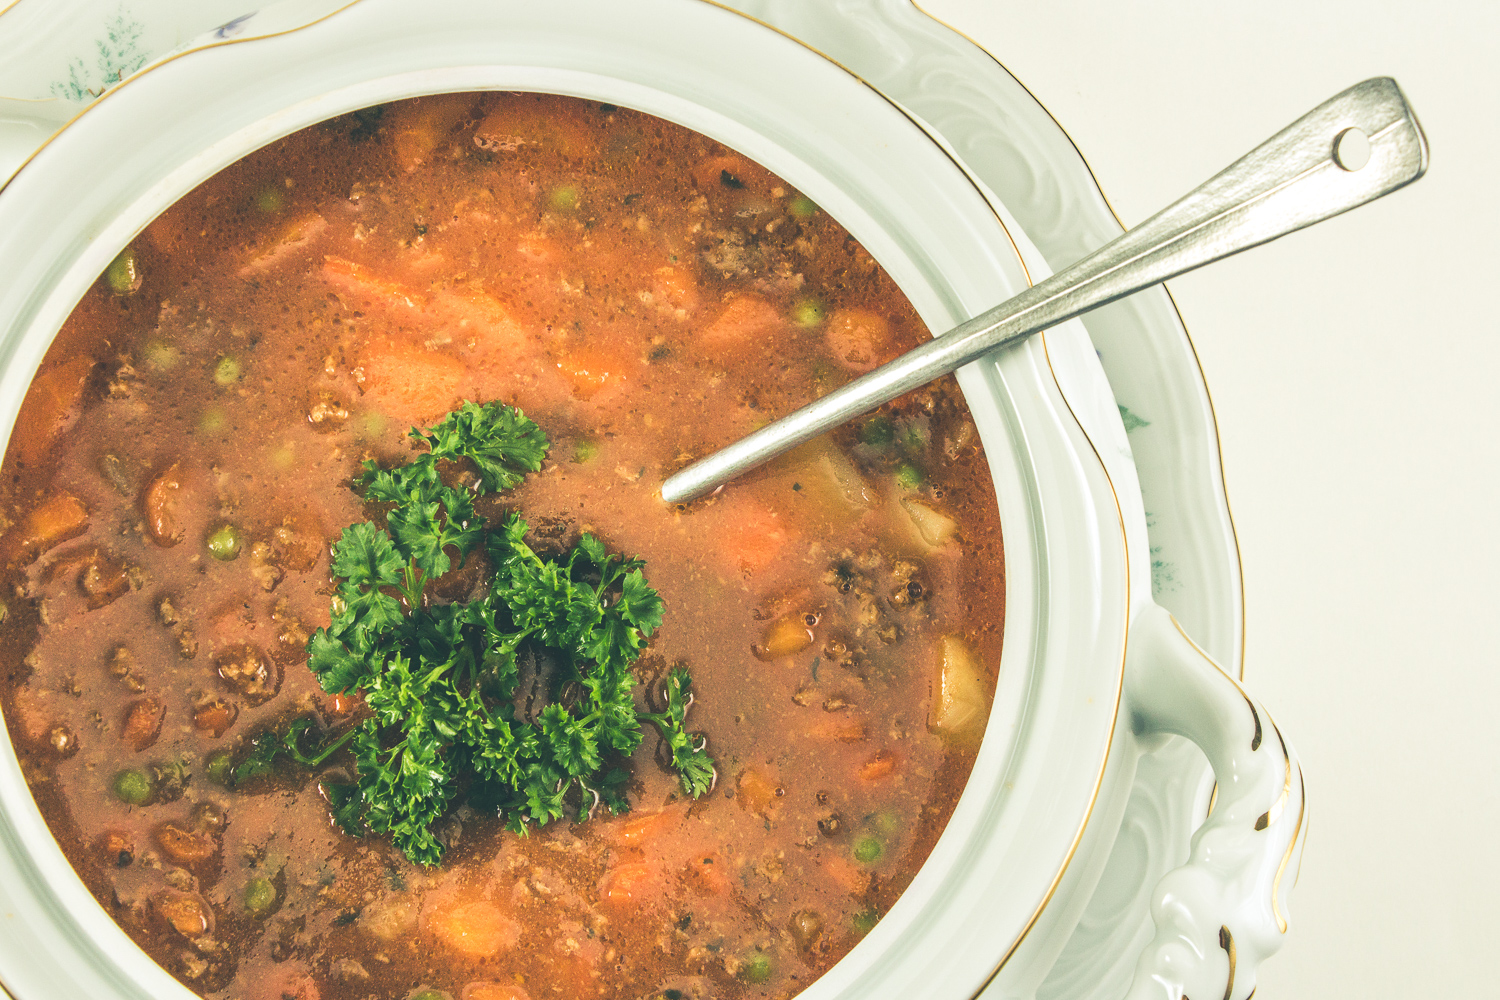 A Bowl of Soup for Your Day